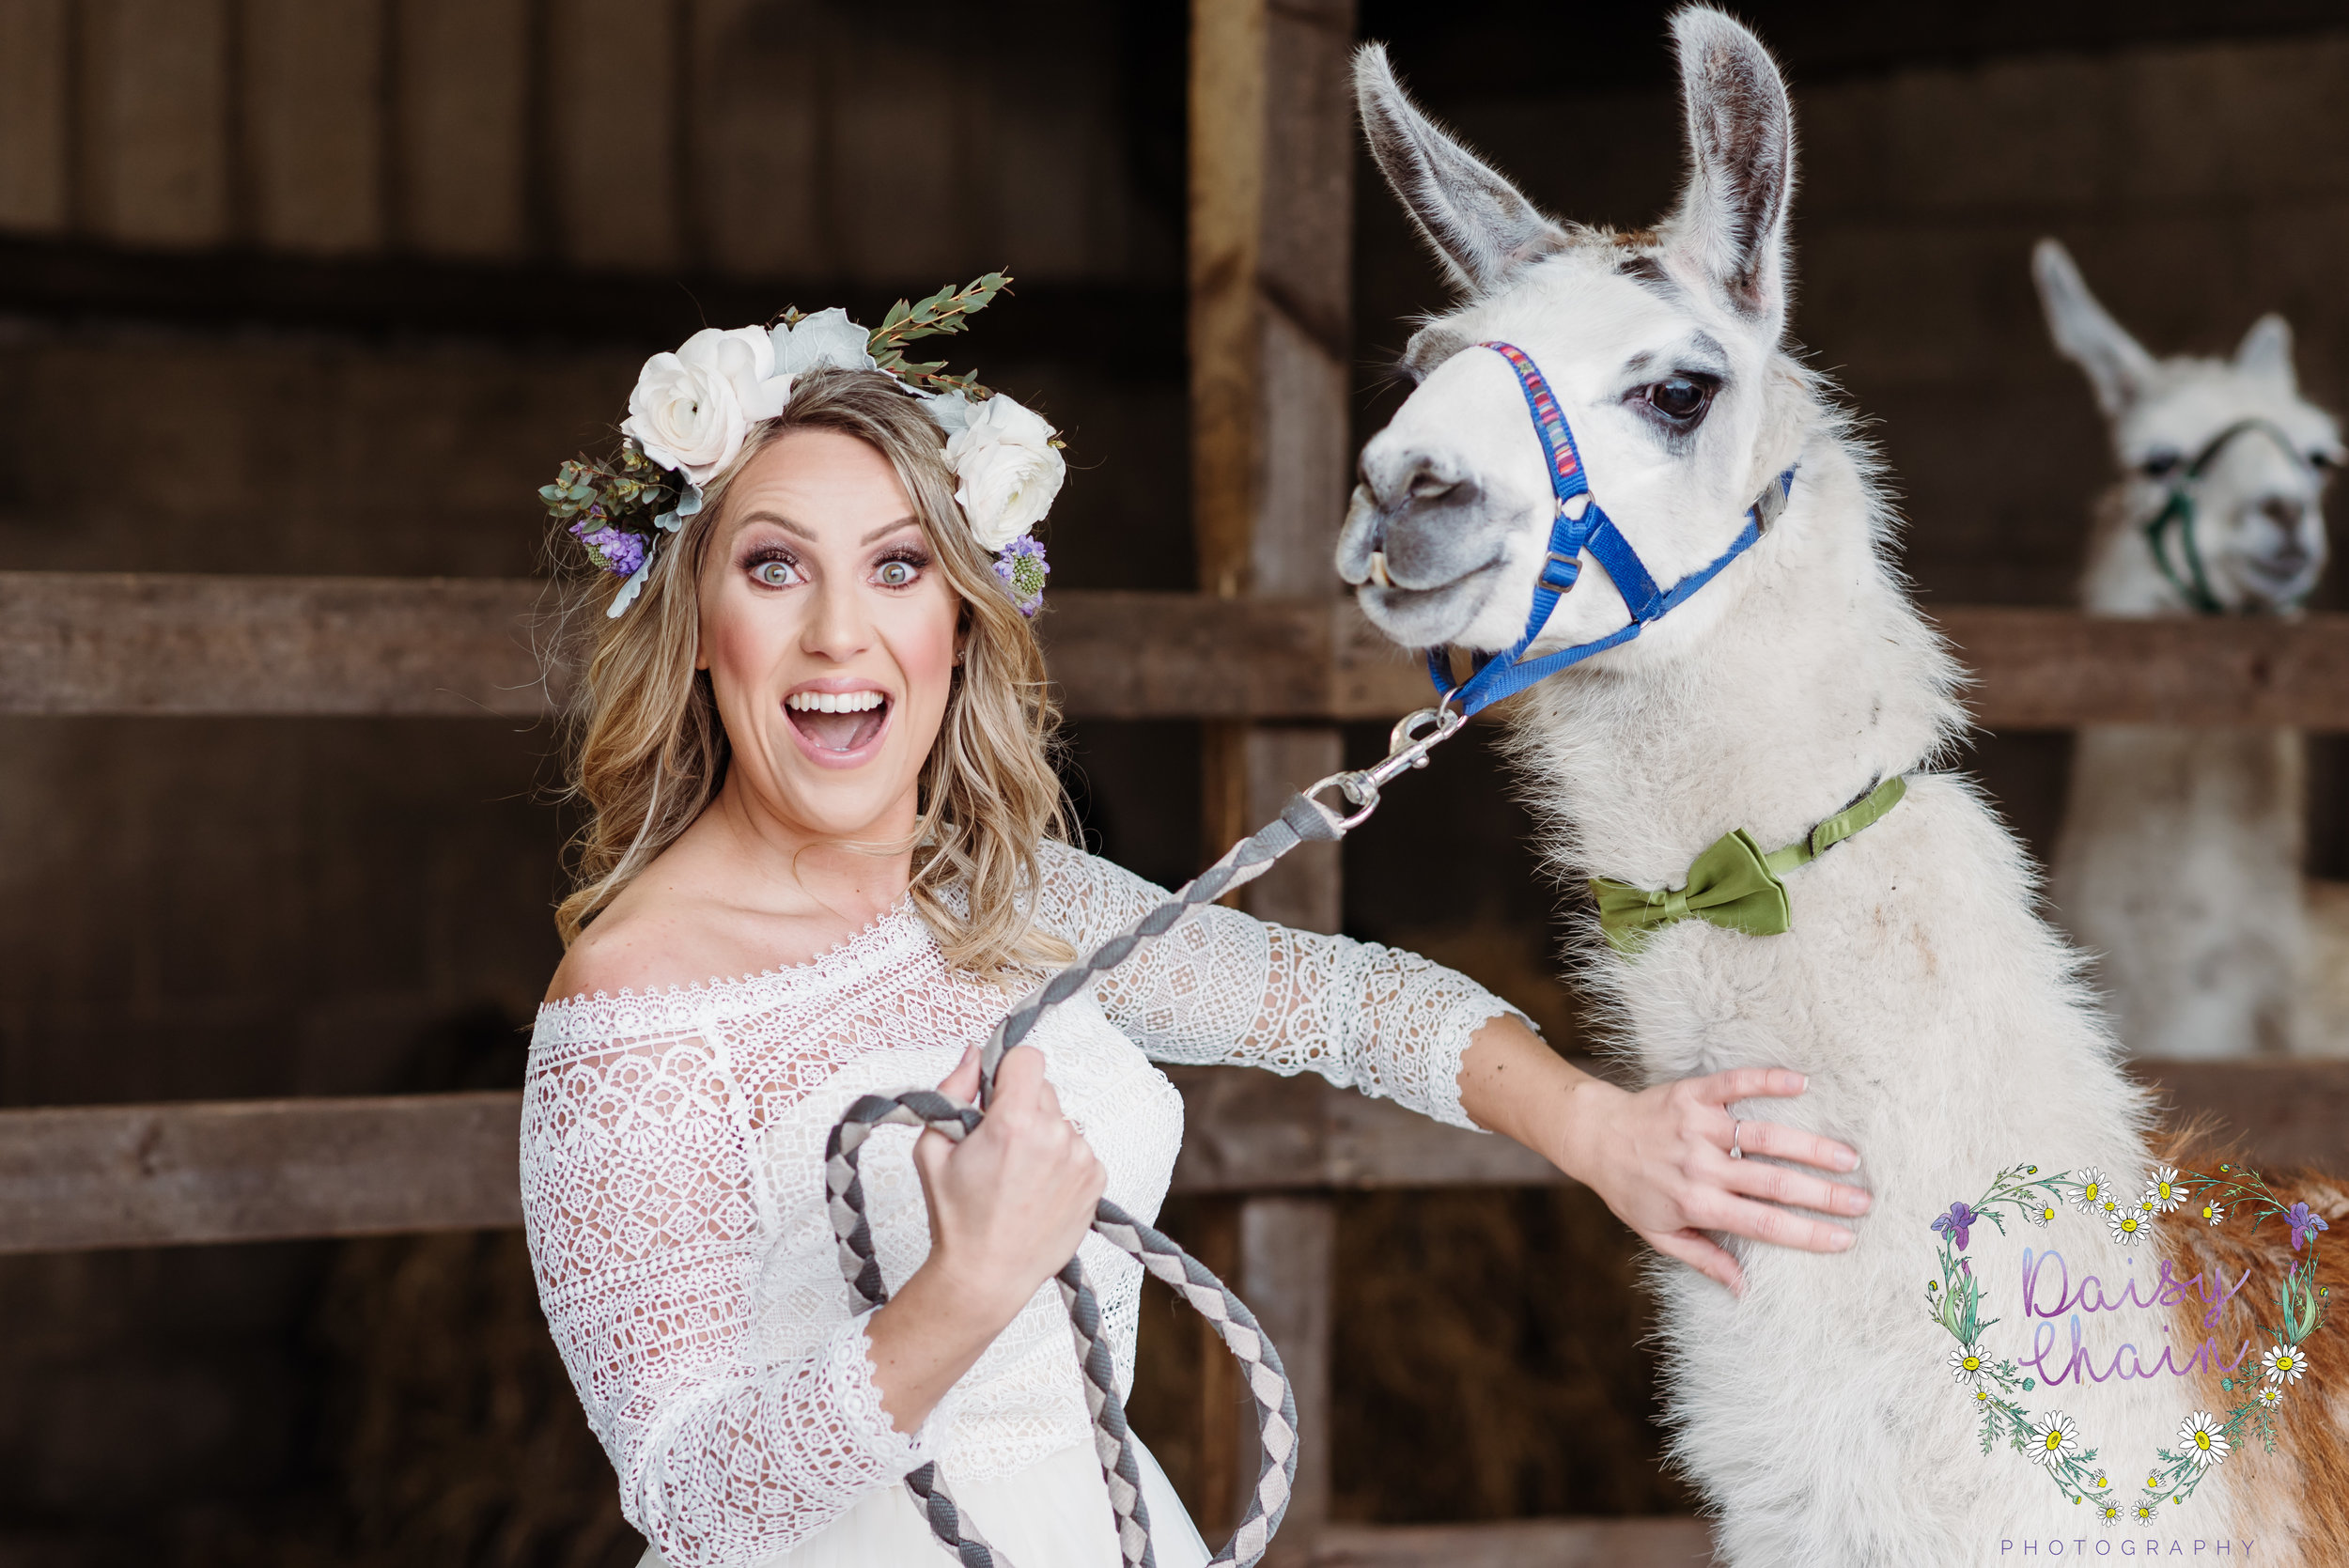 Outdoors wedding with Llamas